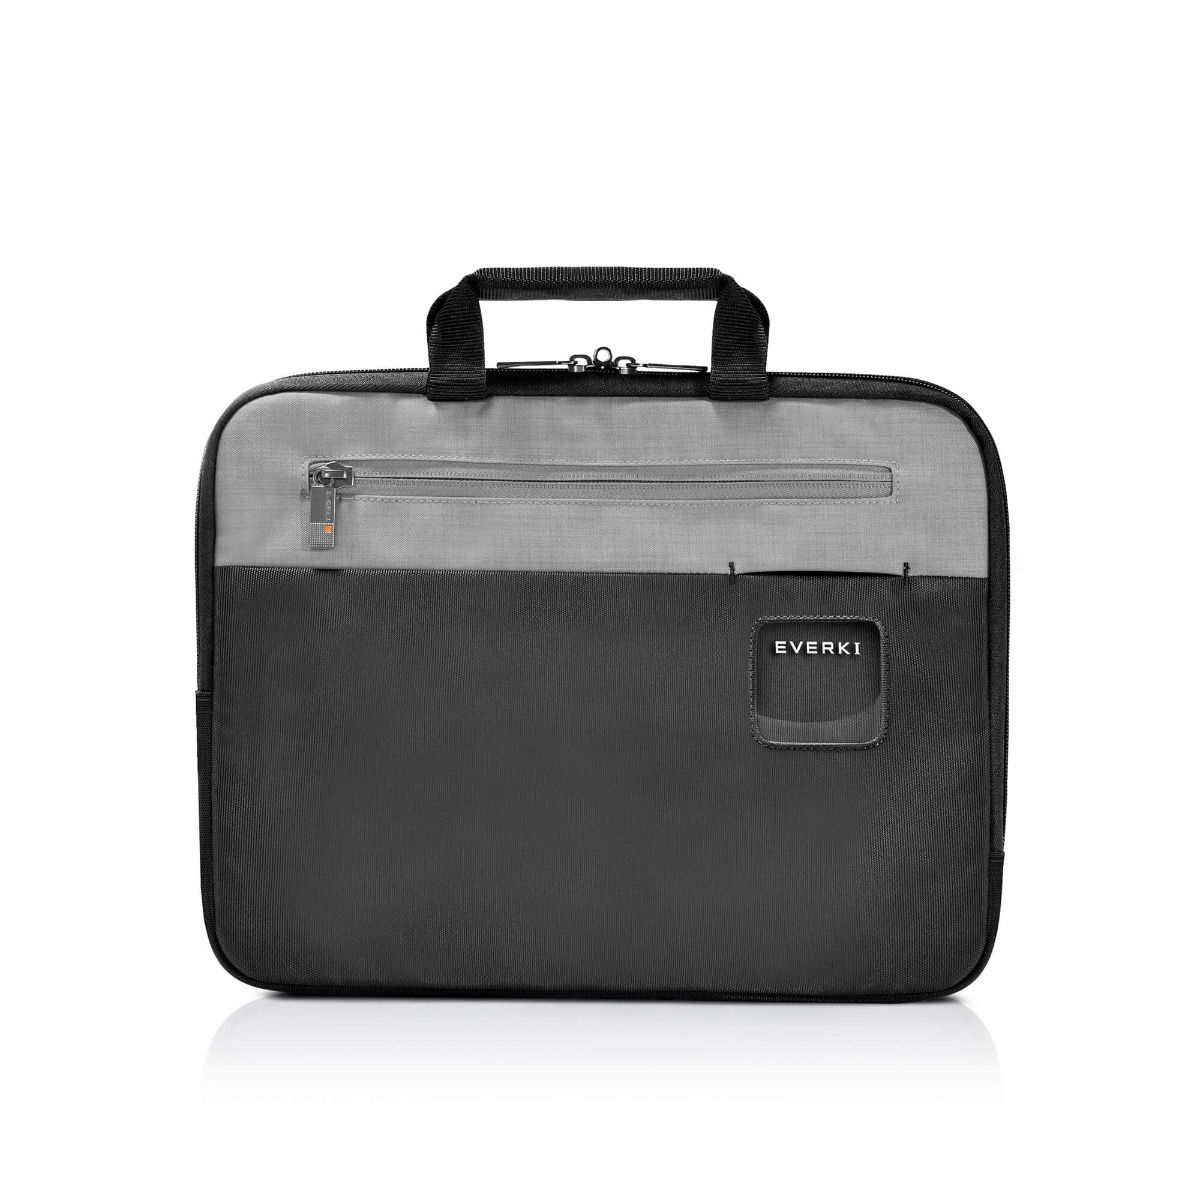 EVERKI ContemPRO 13 Inch Black Laptop Sleeve